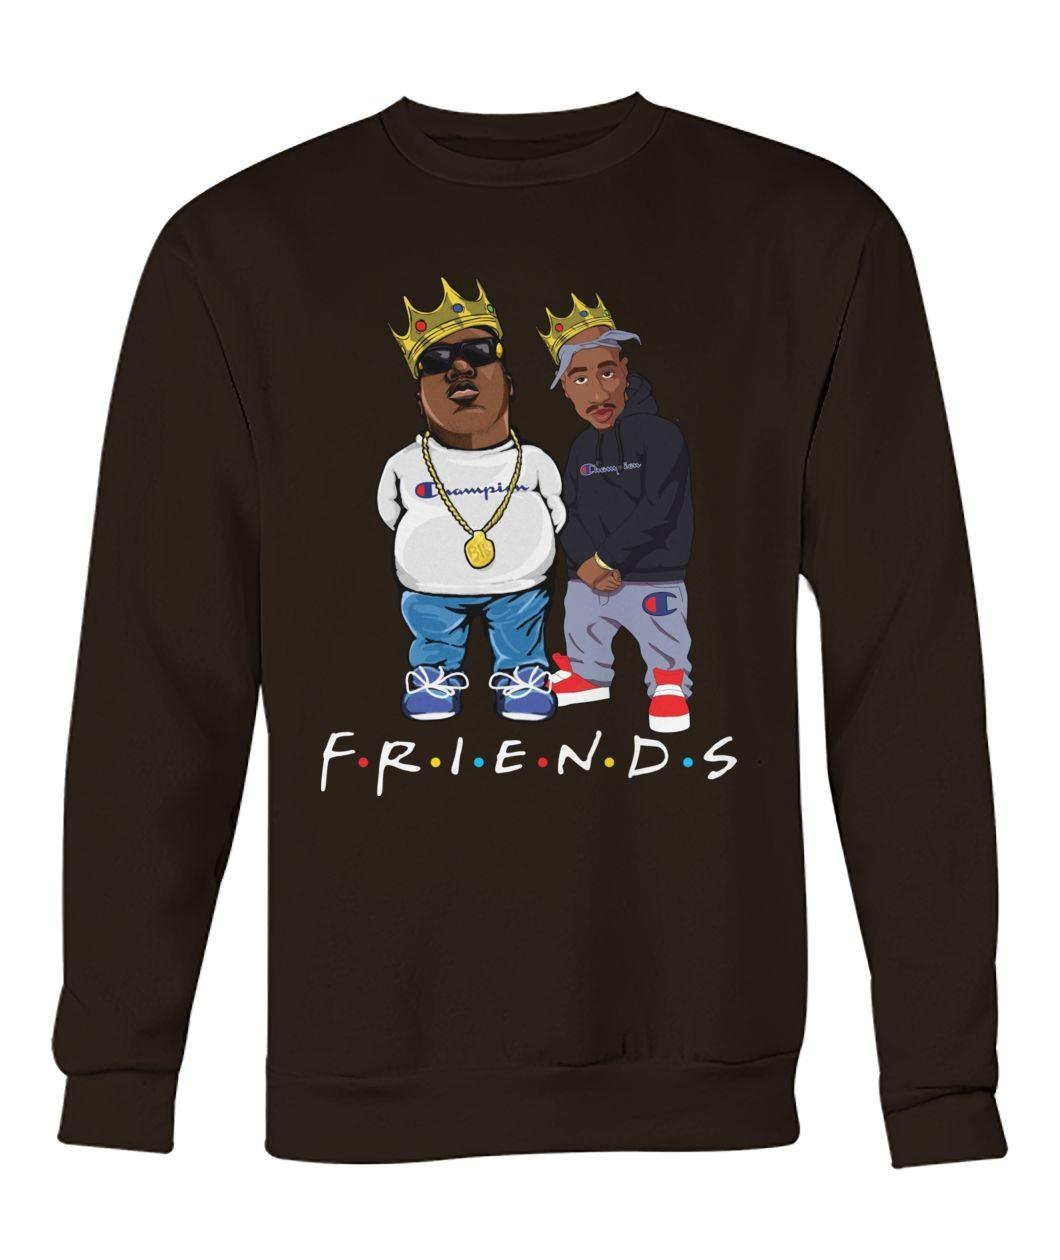 The Notorious B.I.G. and Tupac friends Sweater